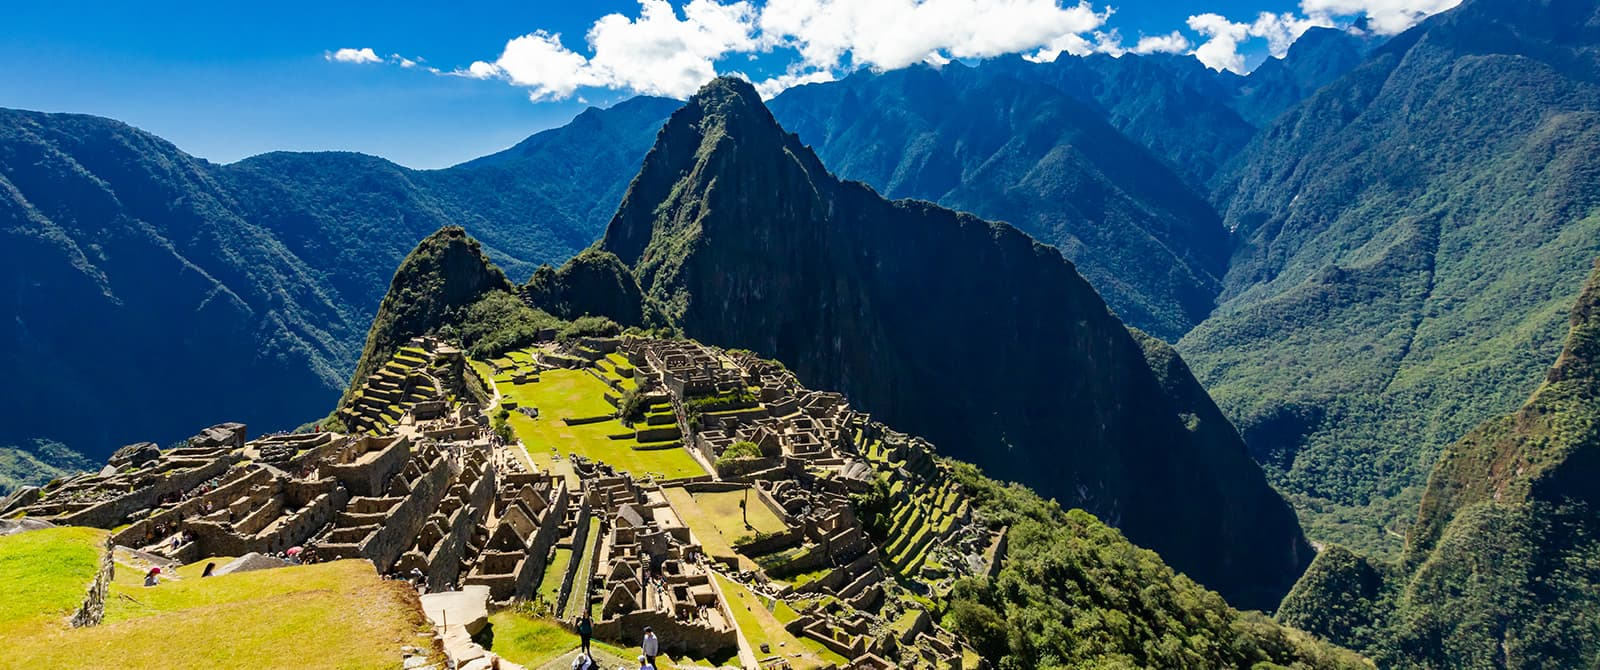 machu picchu archeological complex ruins